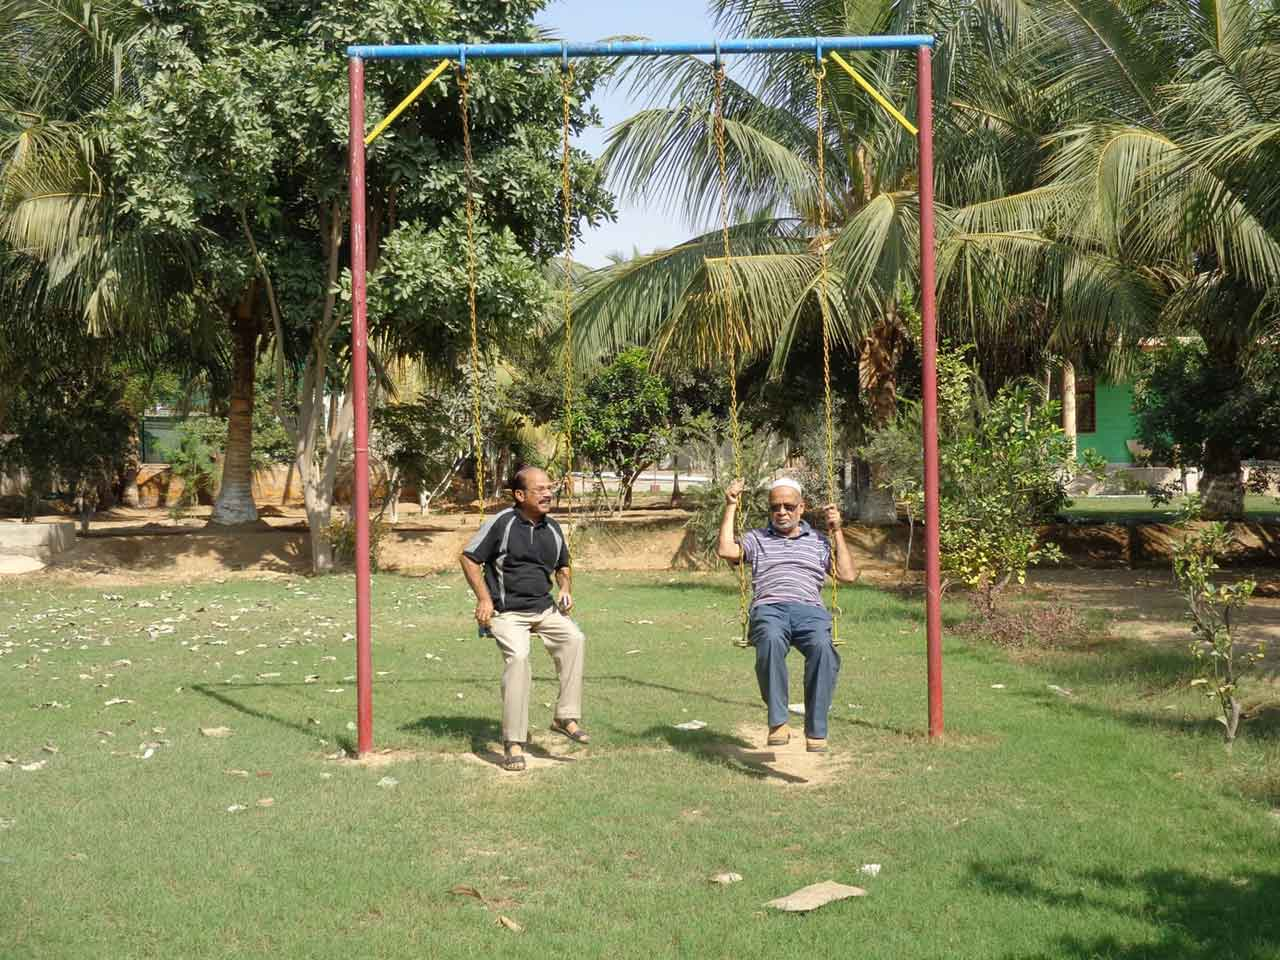 Shafiq A. Khan and Mohammad A. Mateen enjoying on the swing